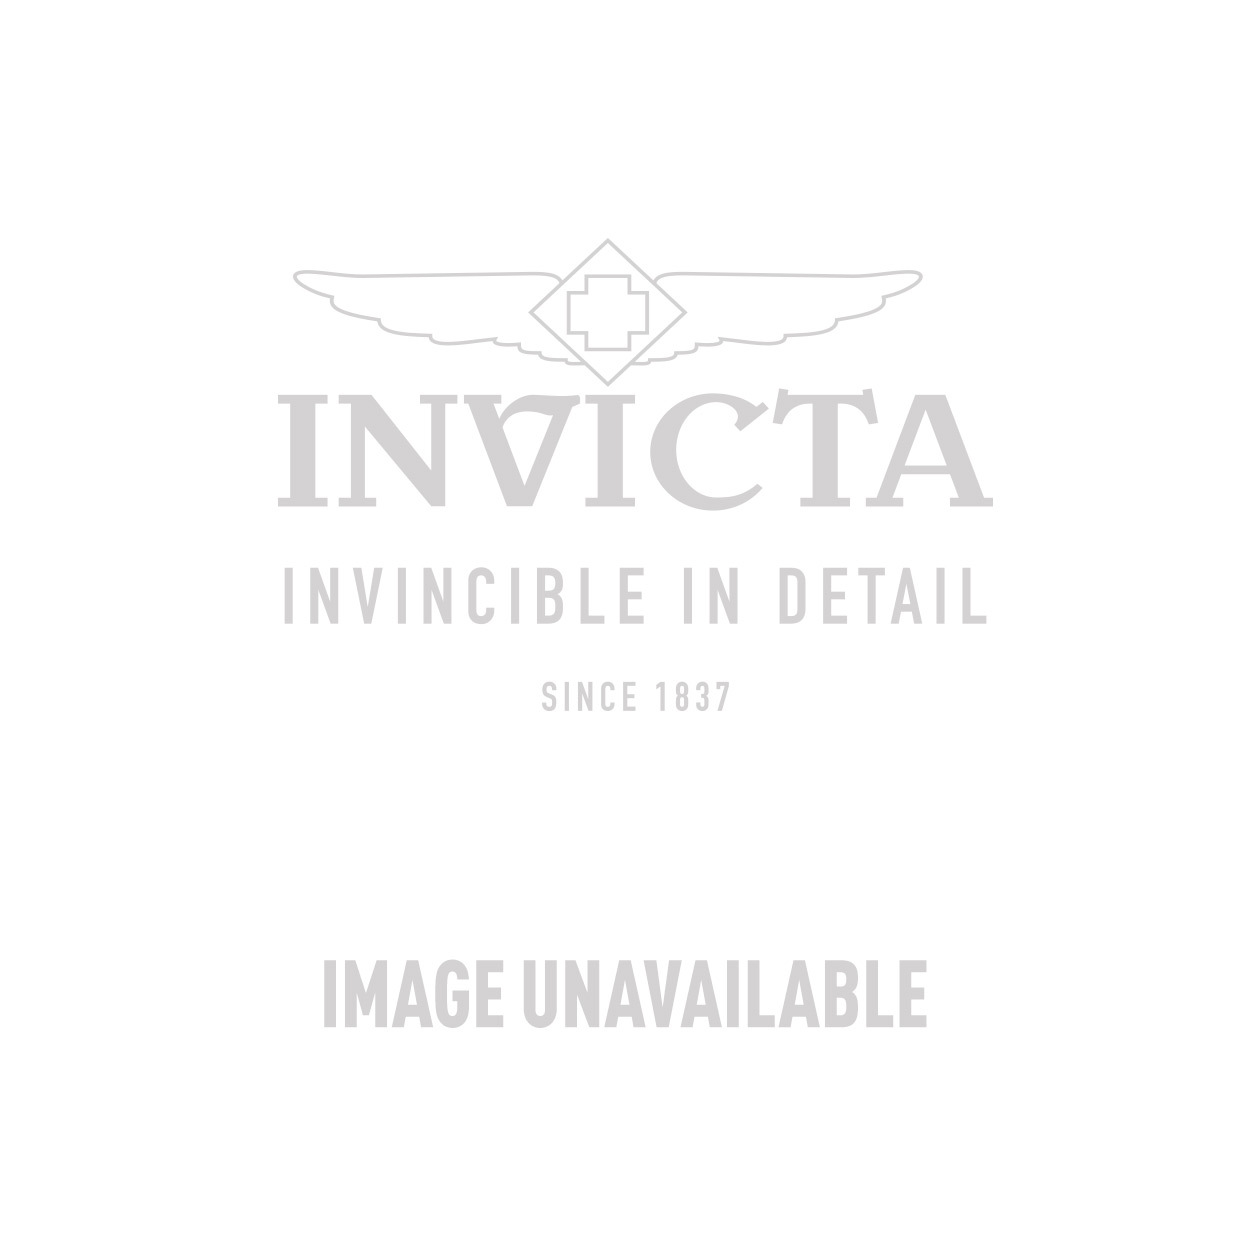 Invicta Coalition Forces Mens Quartz 48mm Stainless Steel Case, Black, Grey Dial - Model 31421